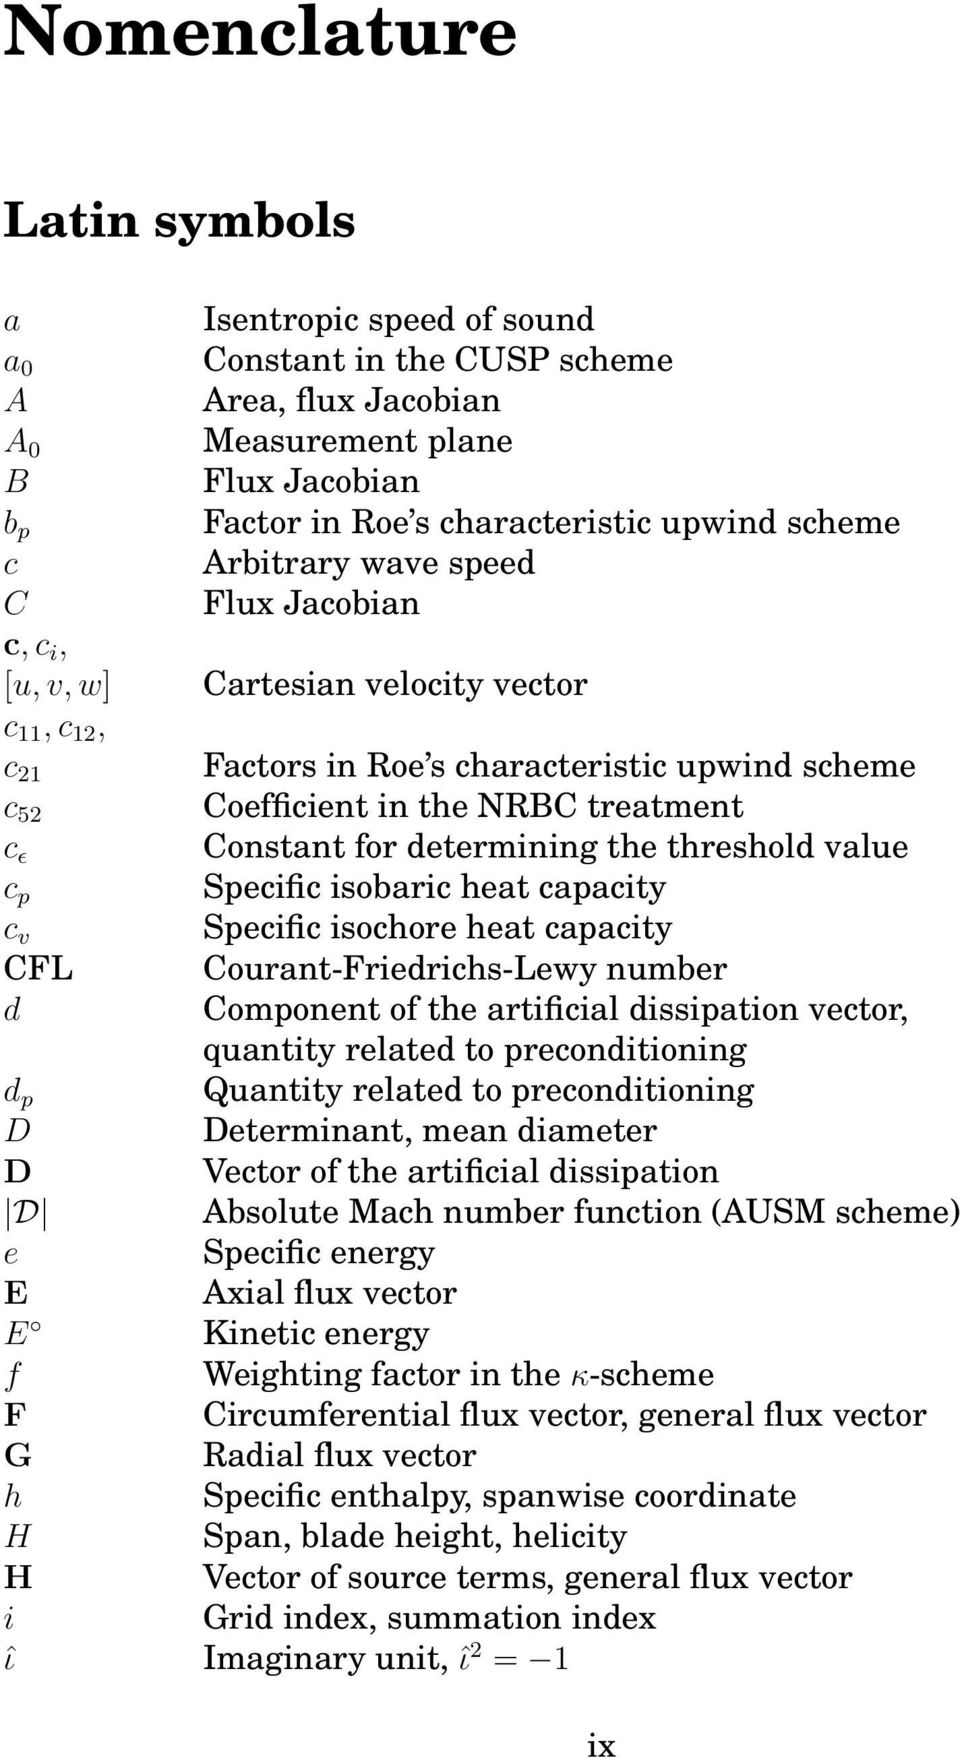 determining the threshold value c p Specific isobaric heat capacity c v Specific isochore heat capacity CFL Courant-Friedrichs-Lewy number d Component of the artificial dissipation vector, quantity